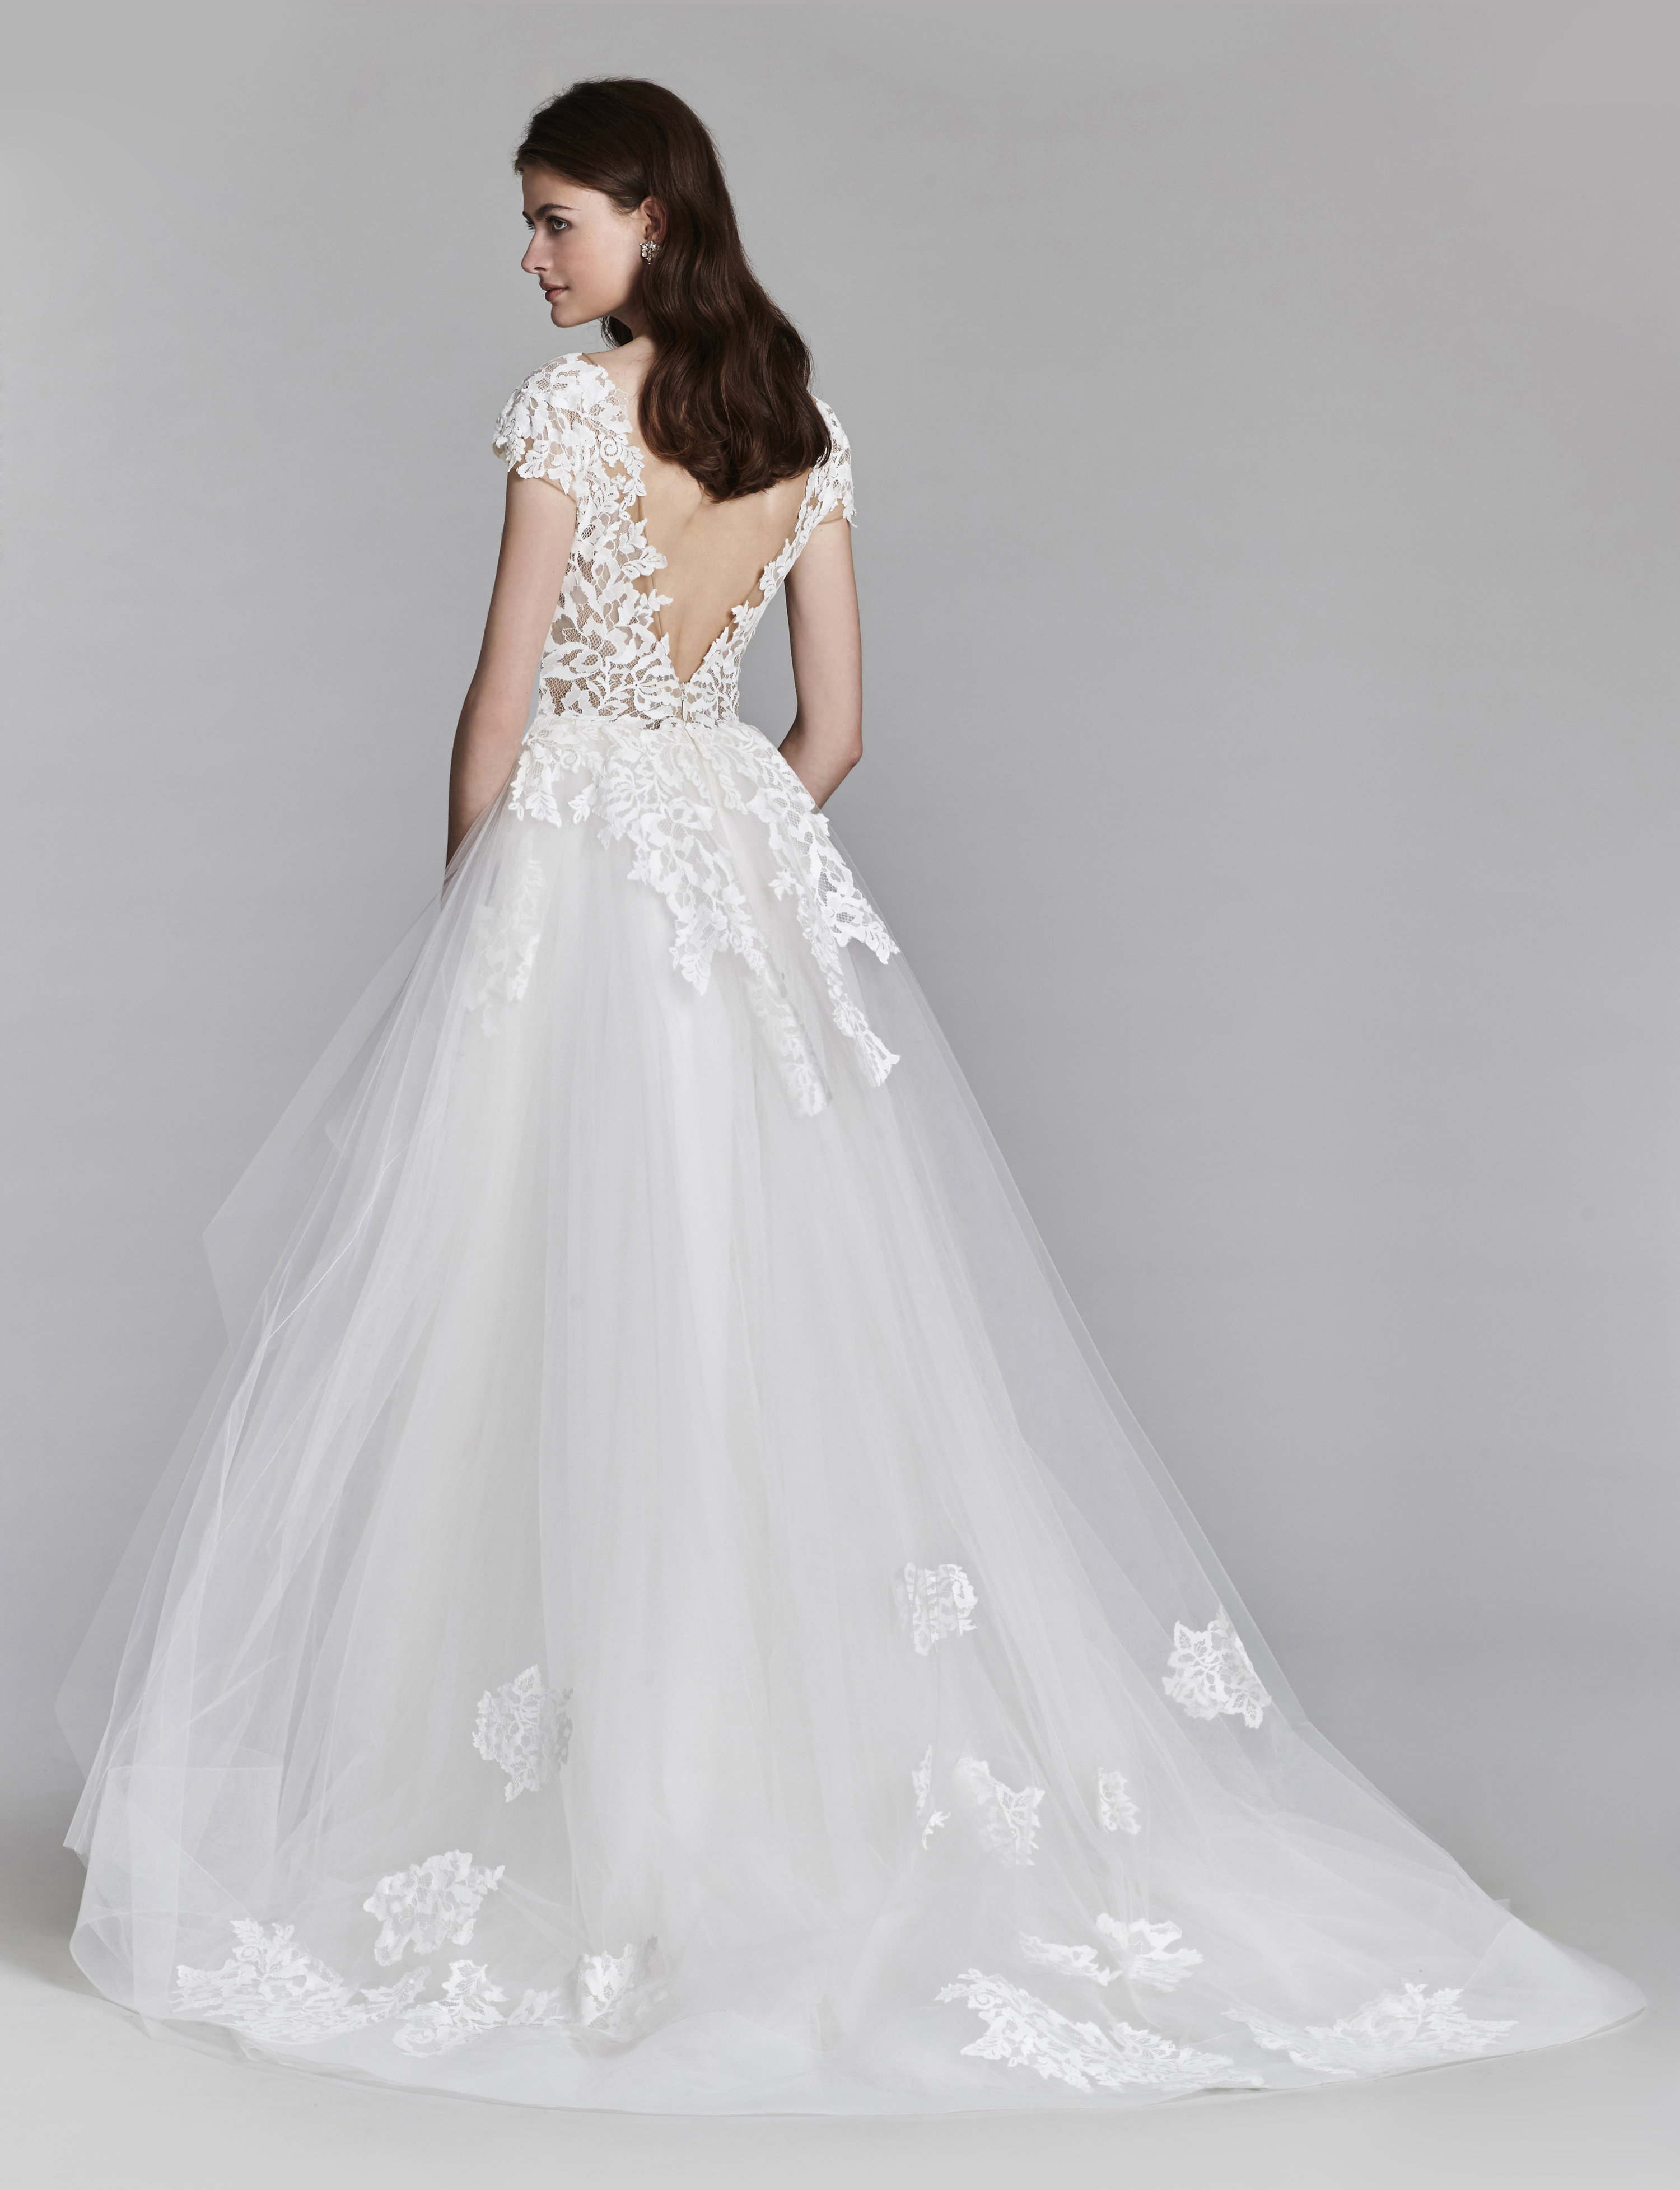 Jim Heljm Wedding Dresses.Bridal Gowns And Wedding Dresses By Jlm Couture Style 8710